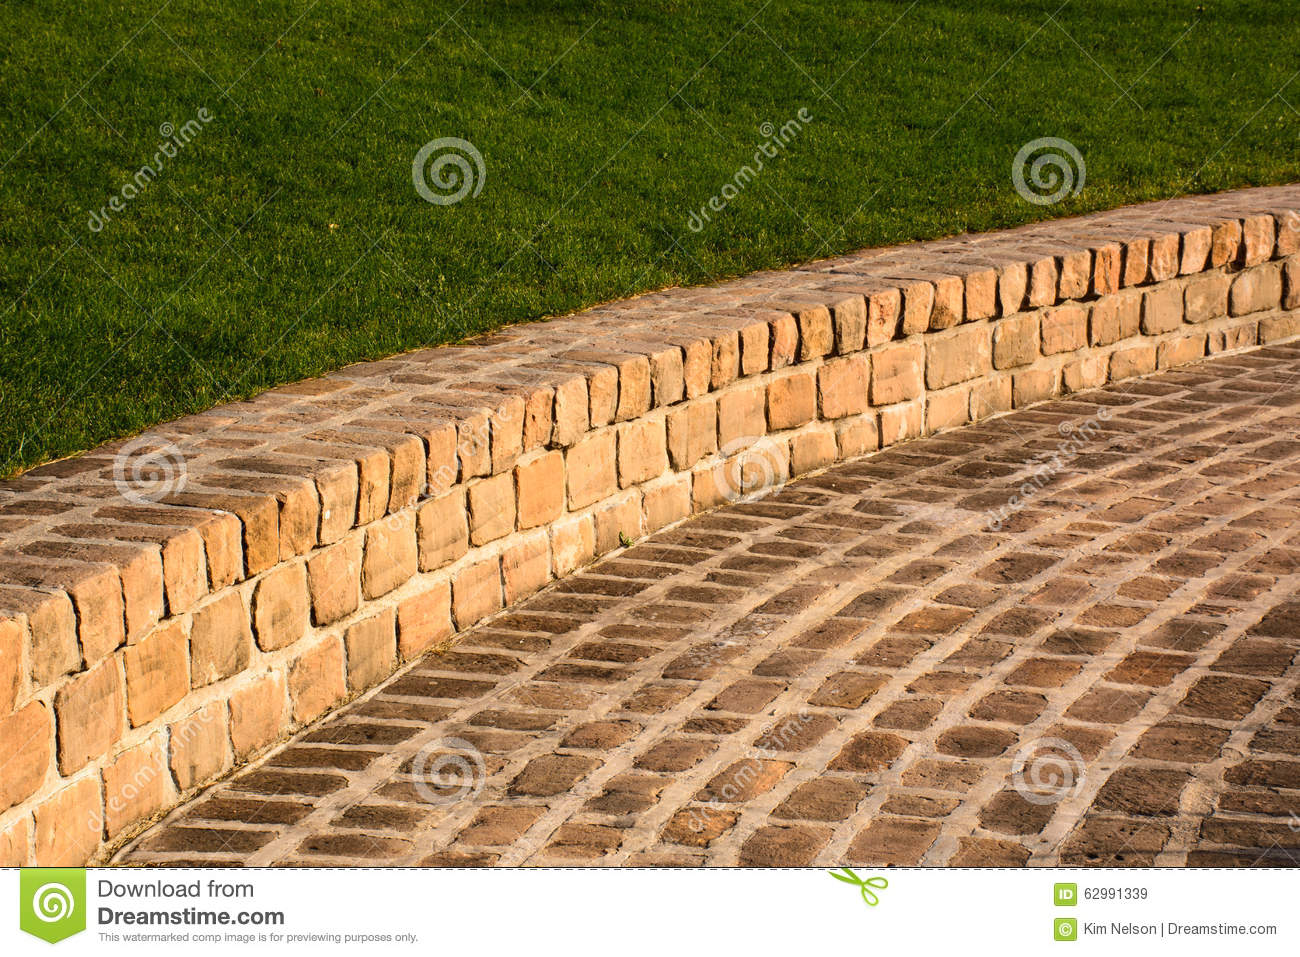 Sandstone Brick Walkway And Grassy Hill As A Background